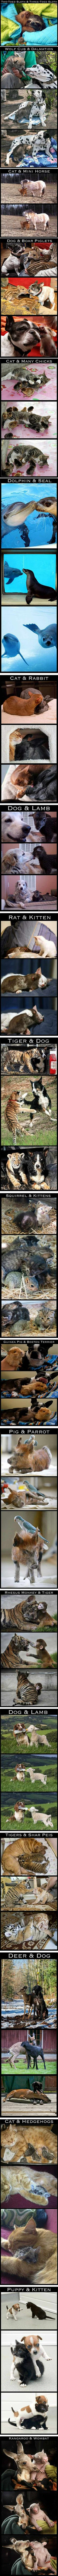 Who doesn't love animal snuggles?!? Just proves, whether it's children or baby animals...they're not born seeing any differences! A friend is a friend! <3